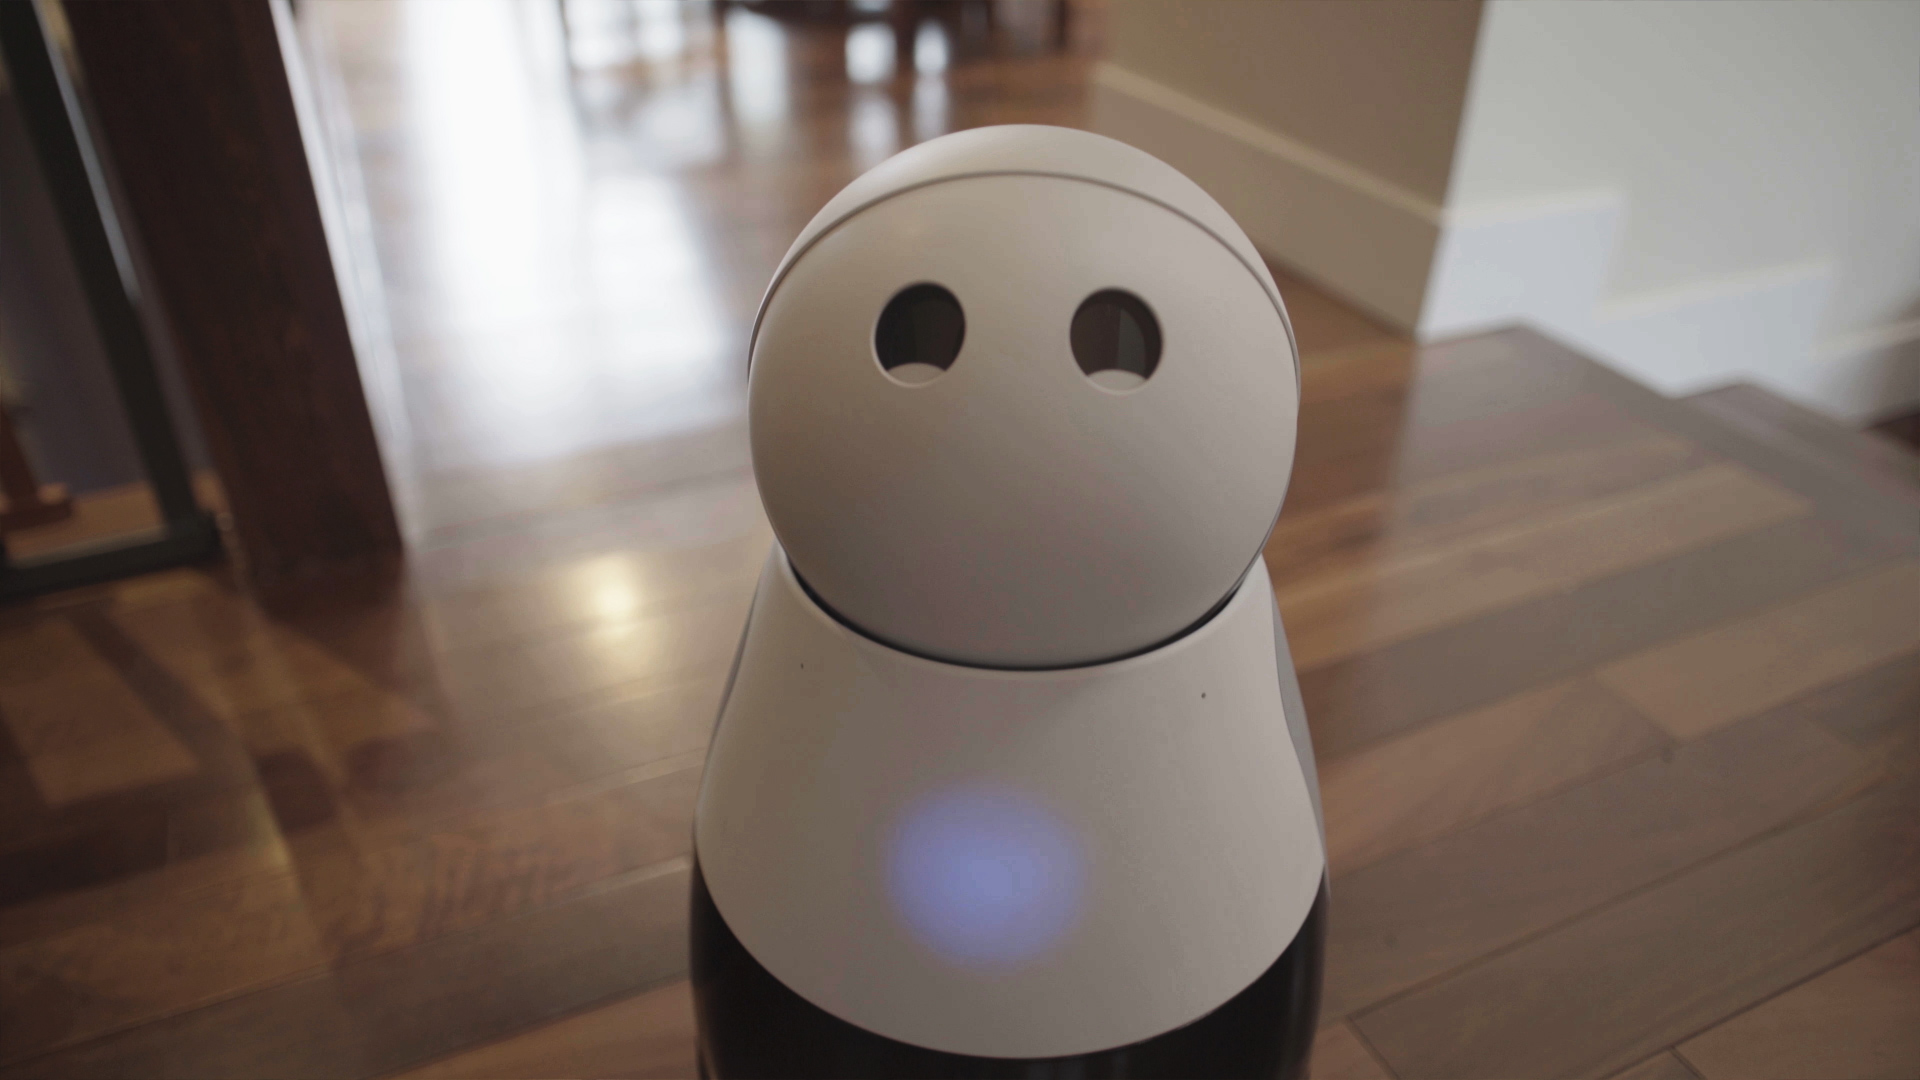 Your New Robot Roommate BFF – Bloomberg